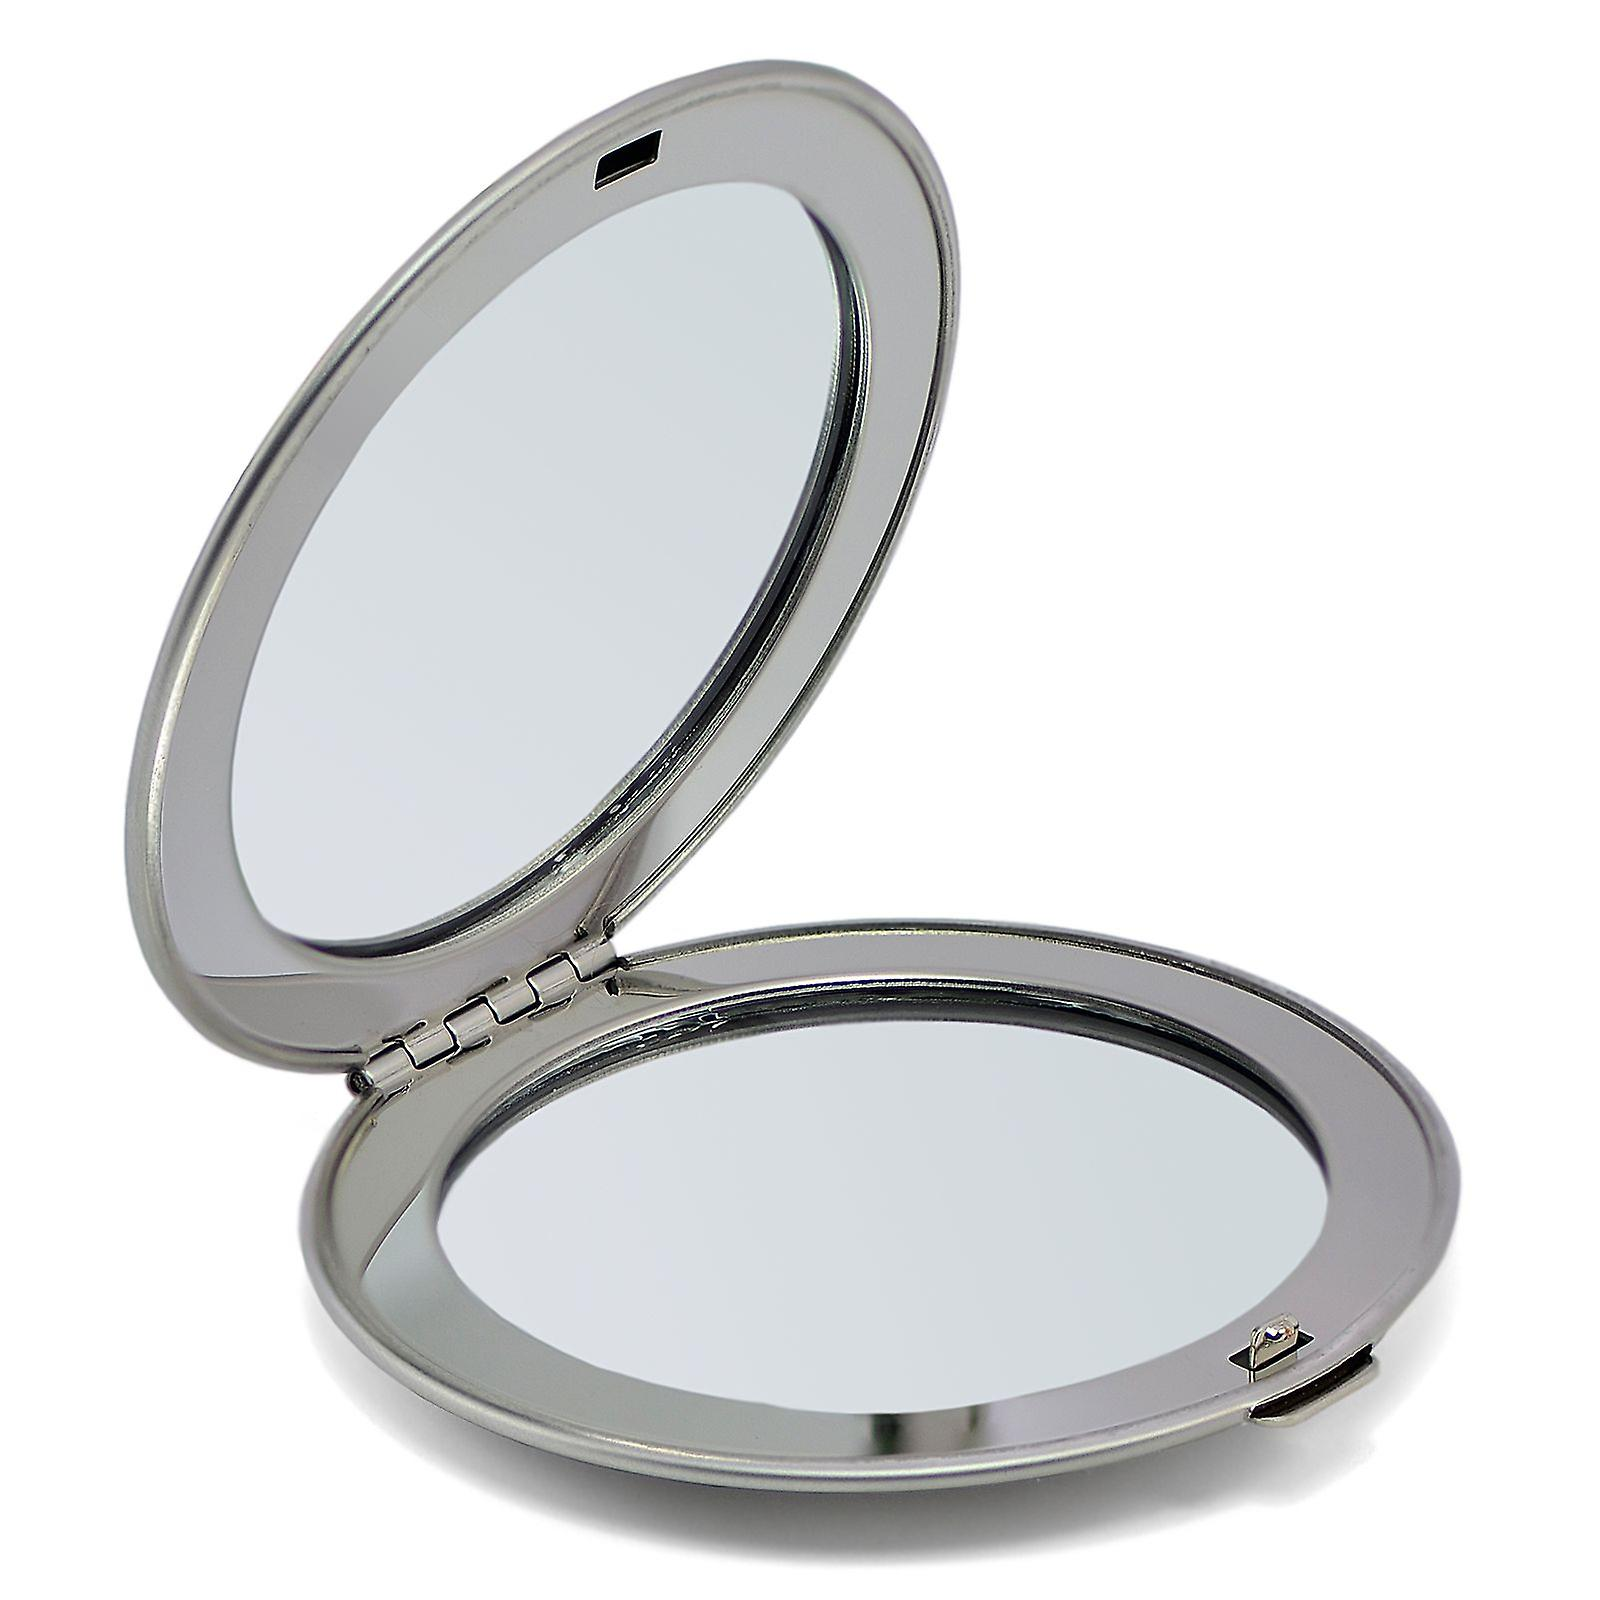 Design compact mirror ACS-12